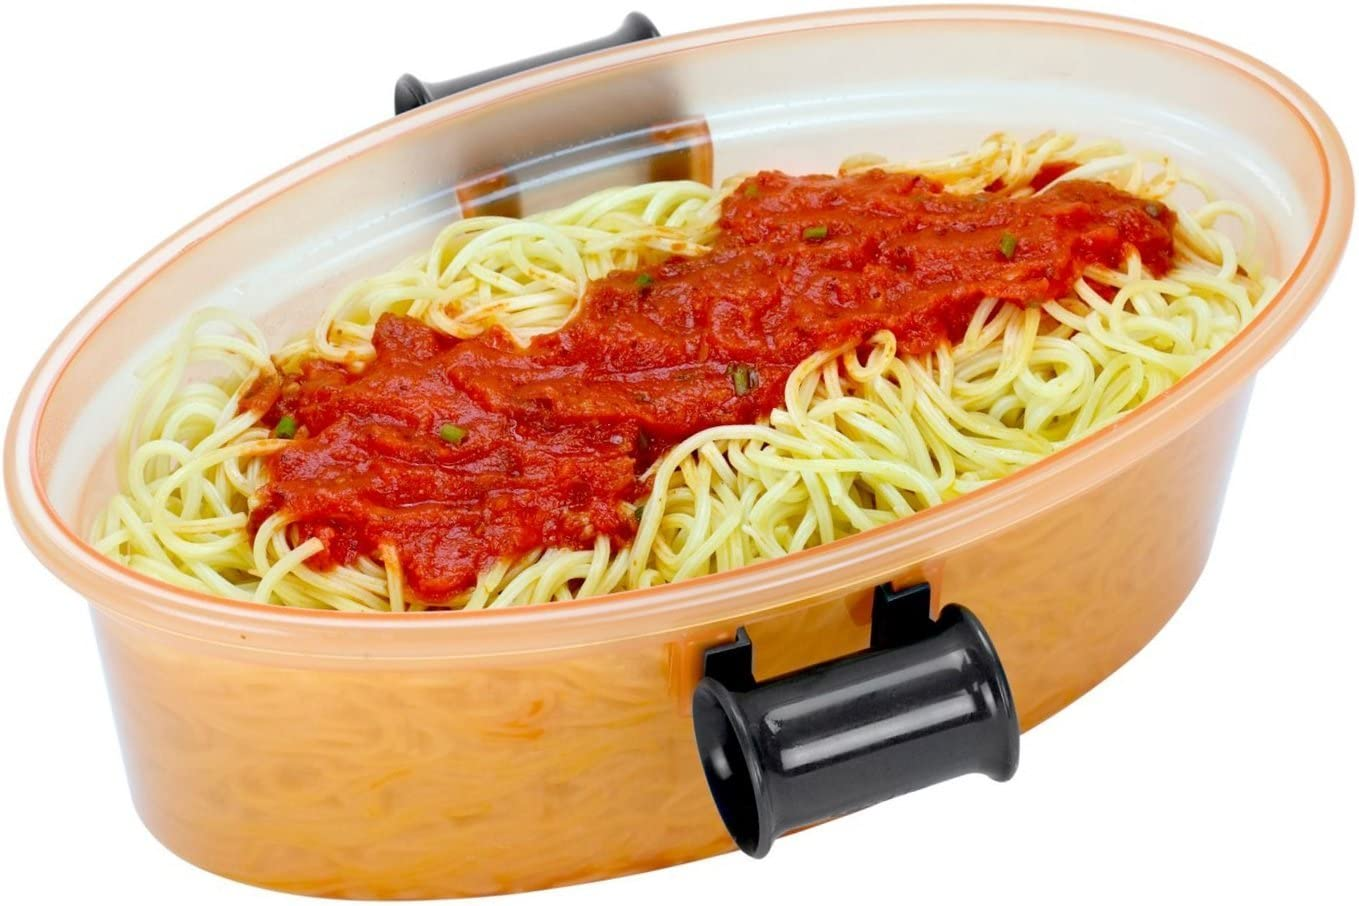 Pasta N More by Emson 5-in-1 Nonstick Microwave Cooker As Seen On TV